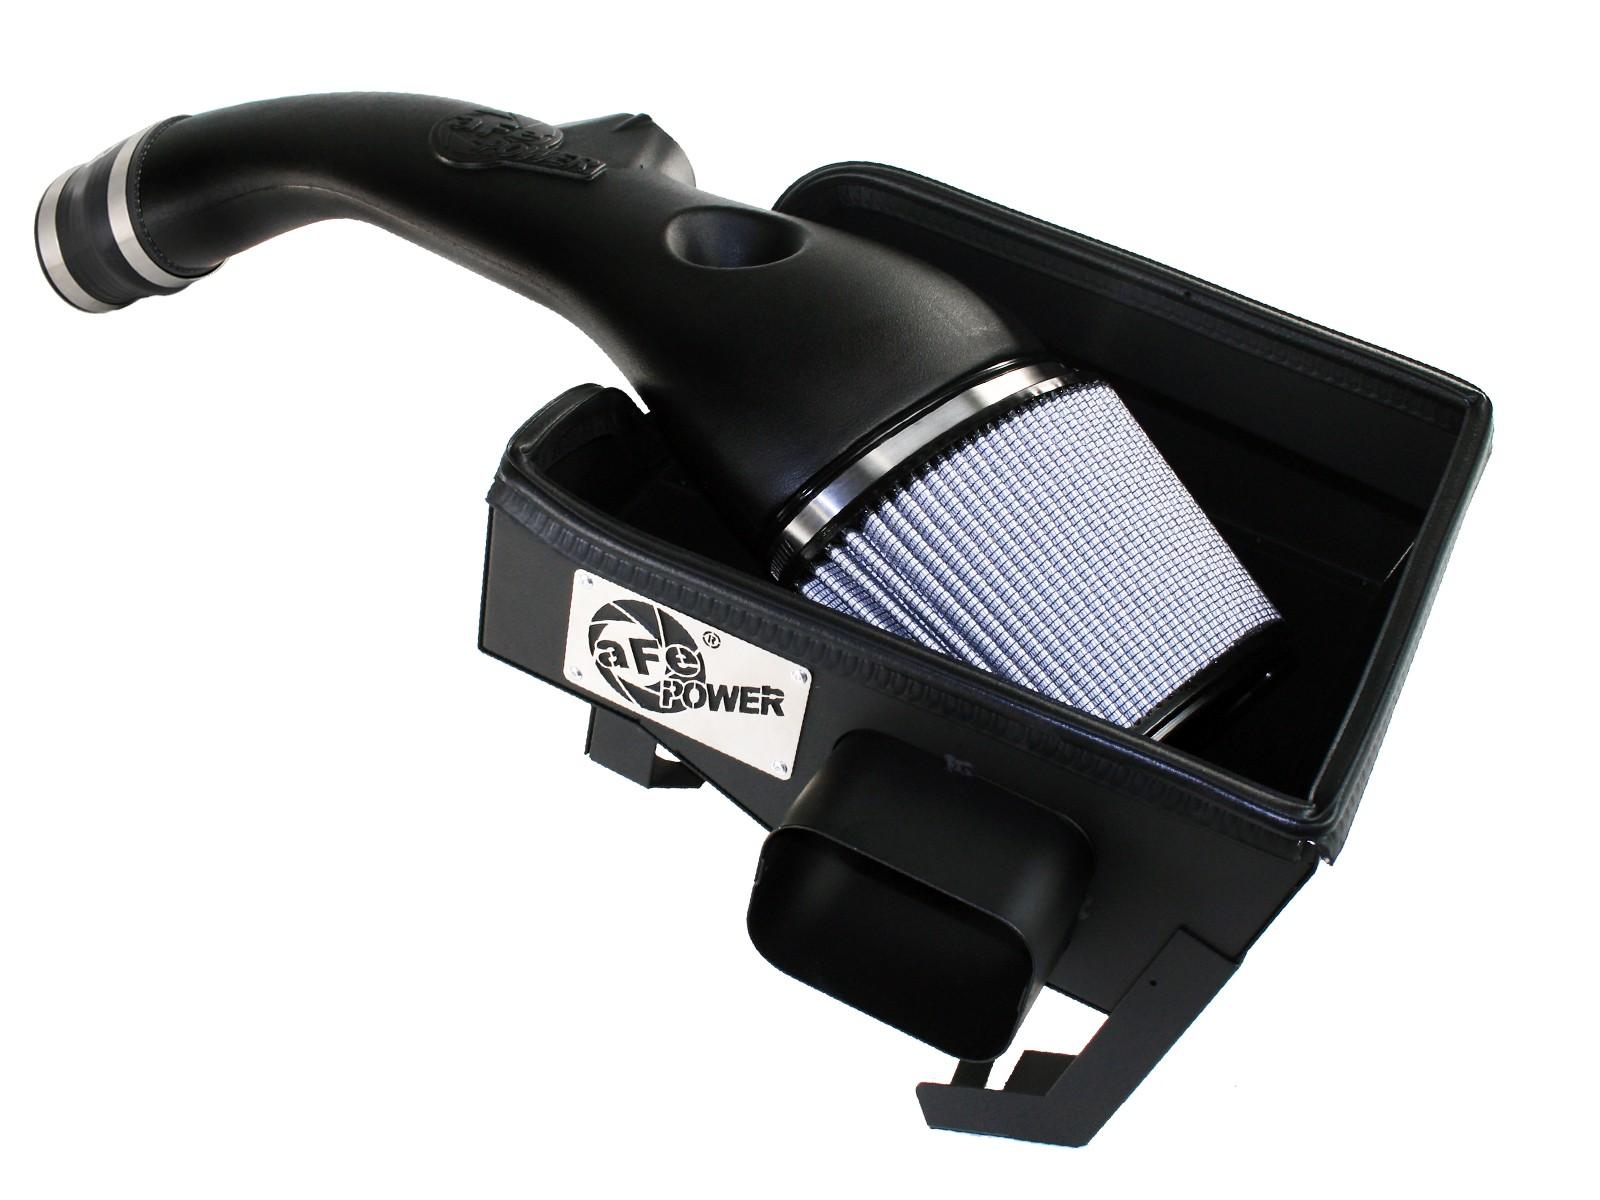 aFe POWER 51-11912 Magnum FORCE Stage-2 Pro DRY S Cold Air Intake System